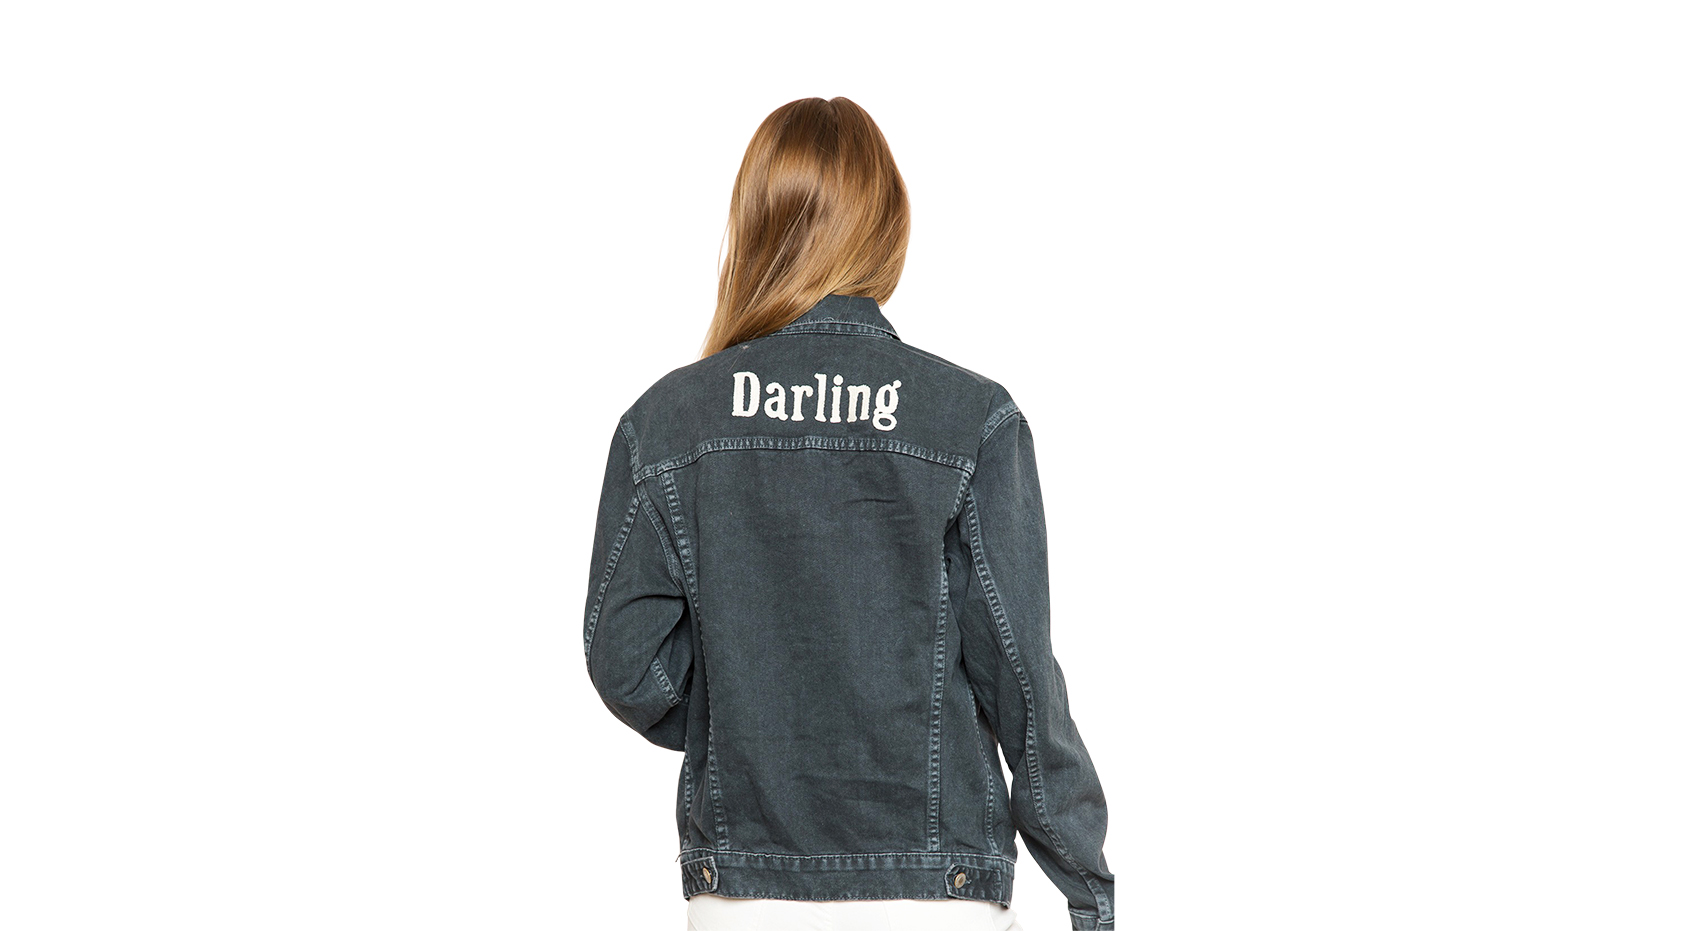 Brandy Melville Amara Darling Jacket